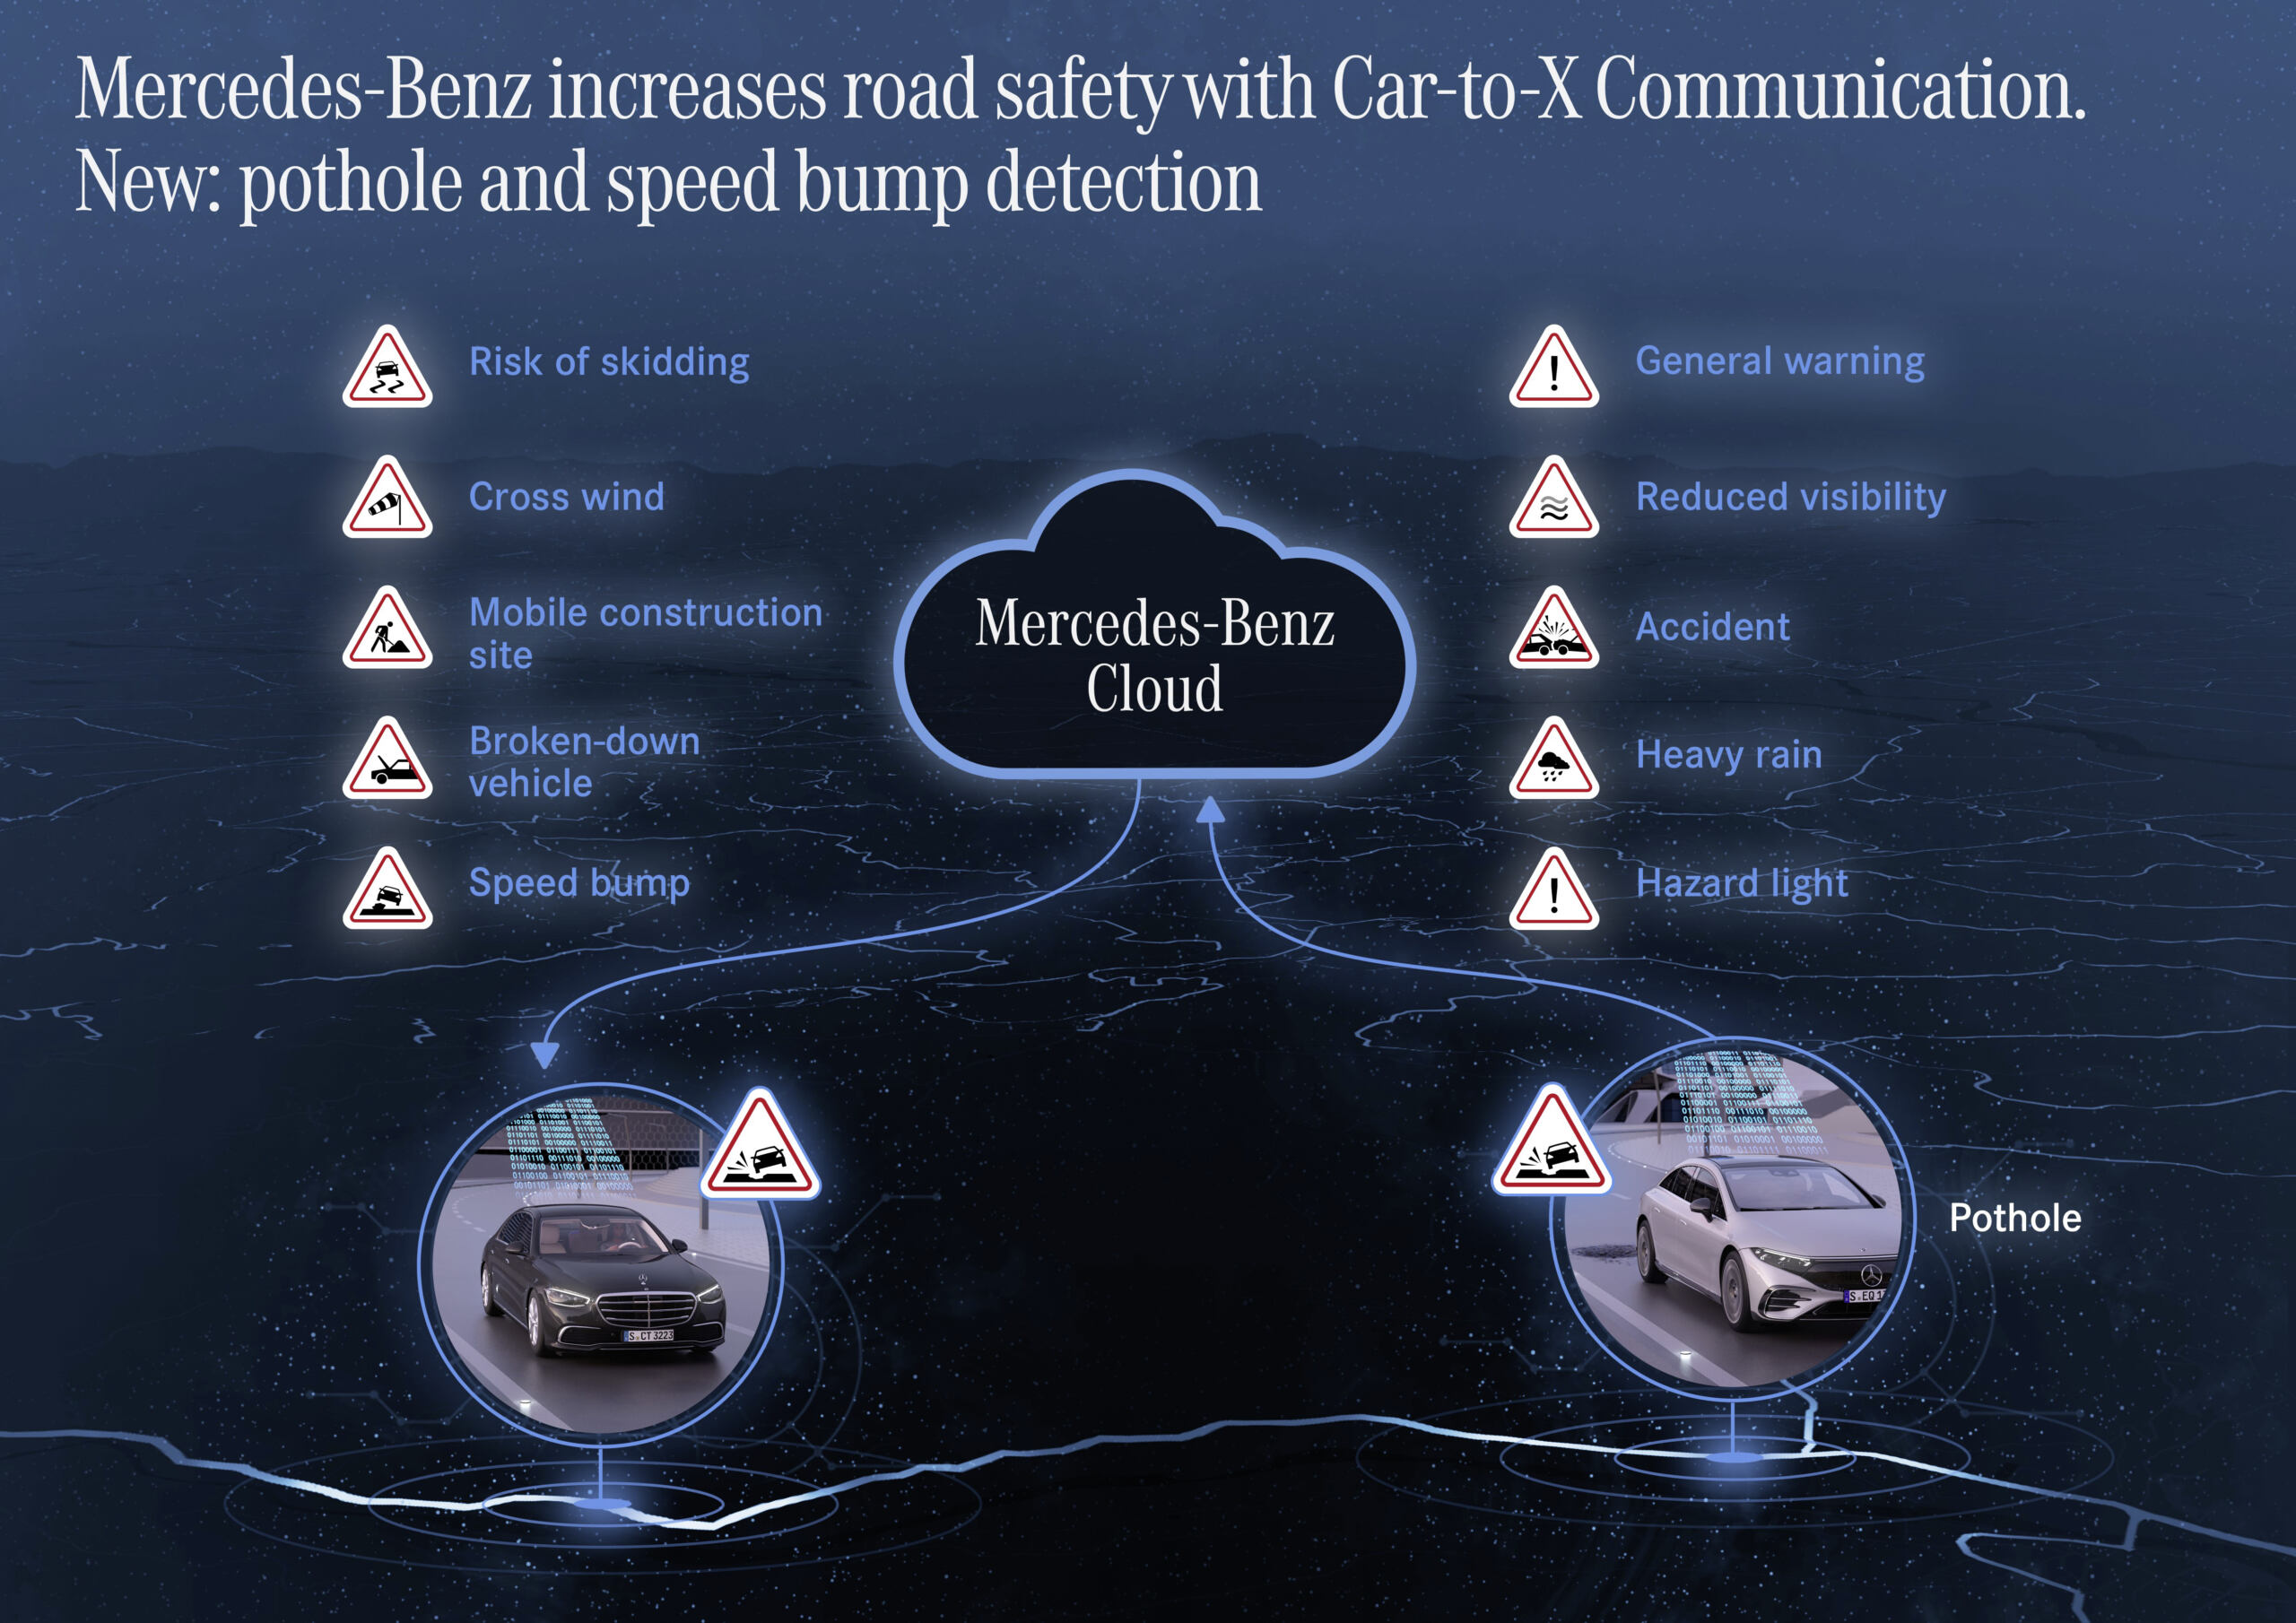 Mercedes Car-to-X Communication